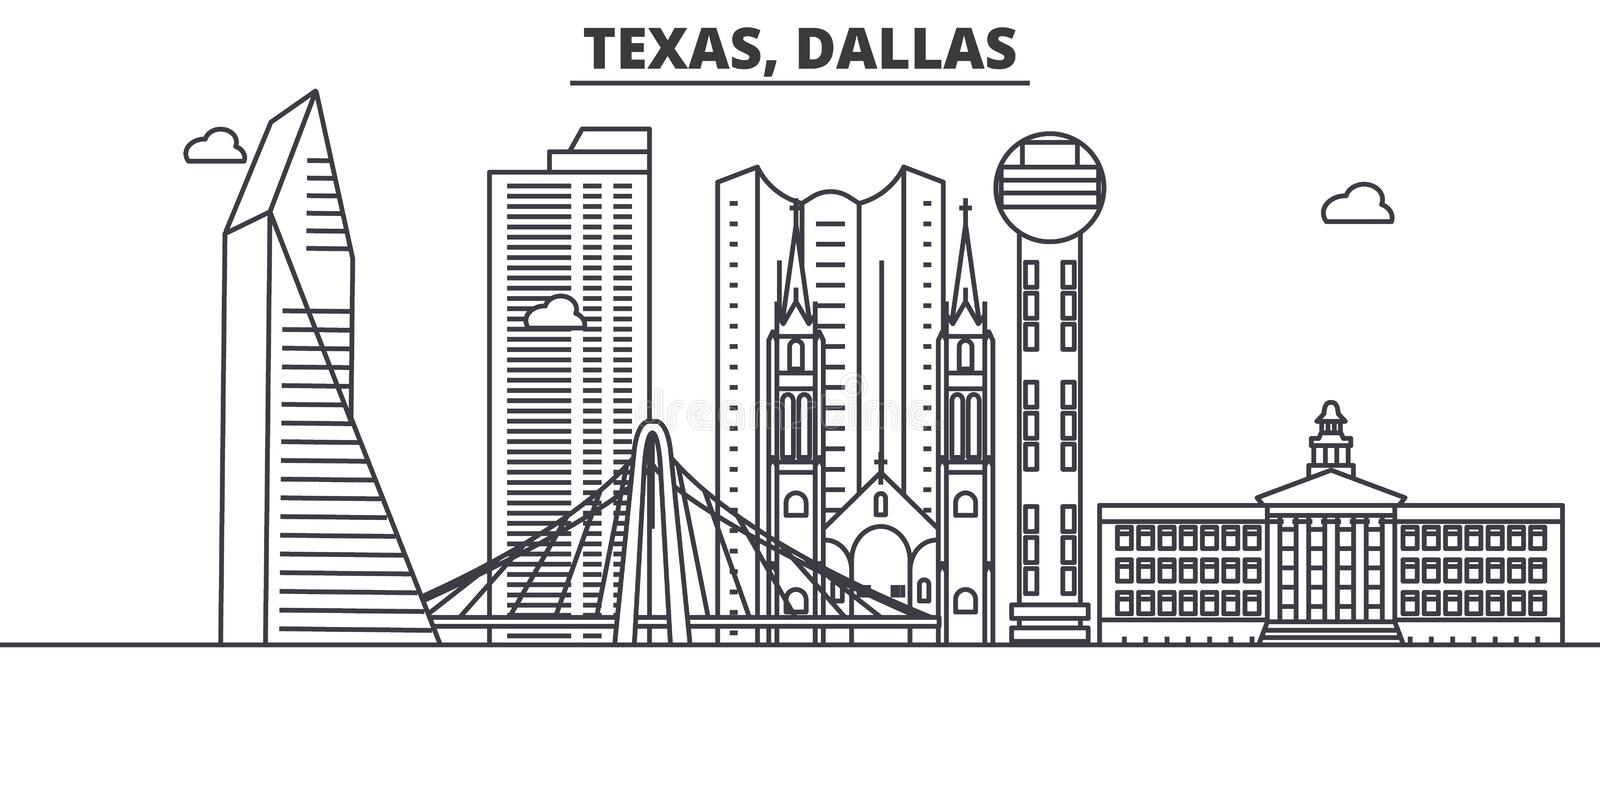 Texas Dallas architecture line skyline illustration. Linear vector cityscape with famous landmarks, city sights, design royalty free illustration